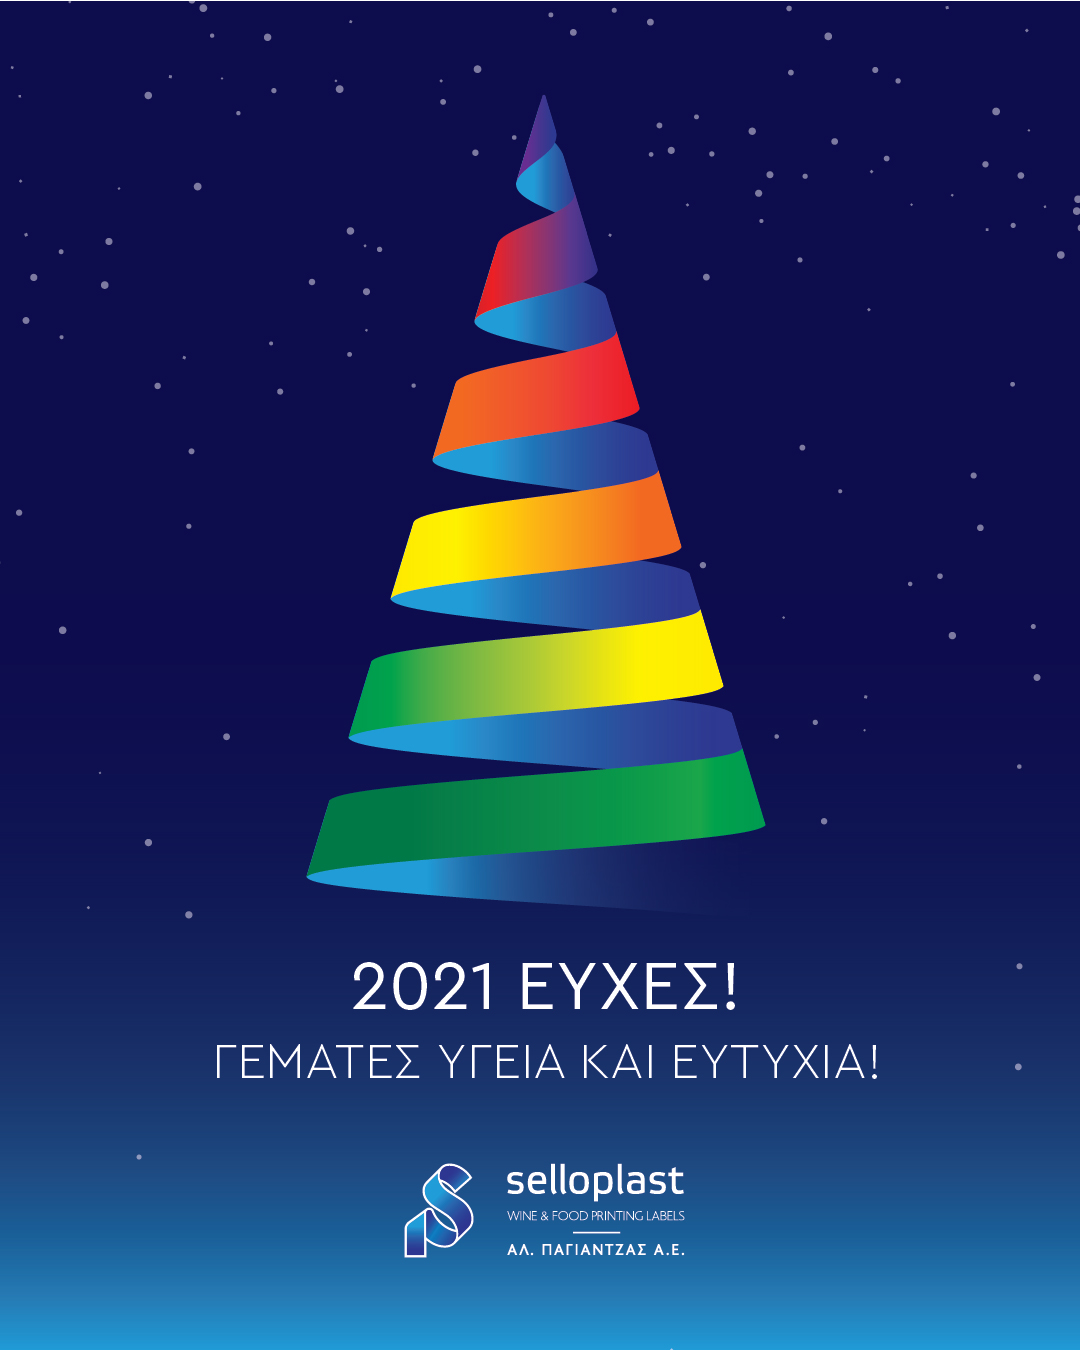 Christmas wishes for 2021